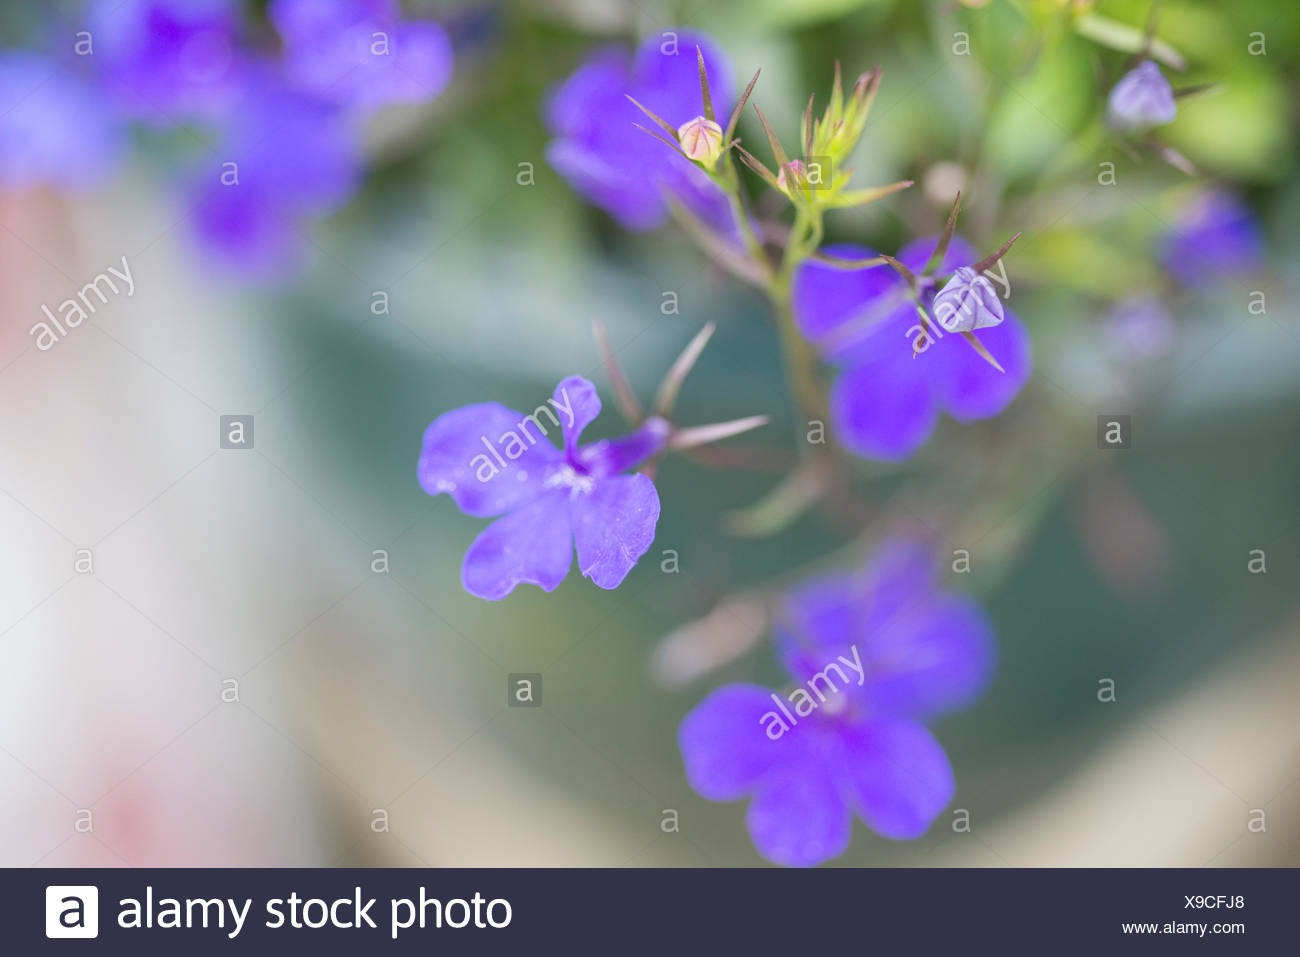 small purple flowers - Stock Image